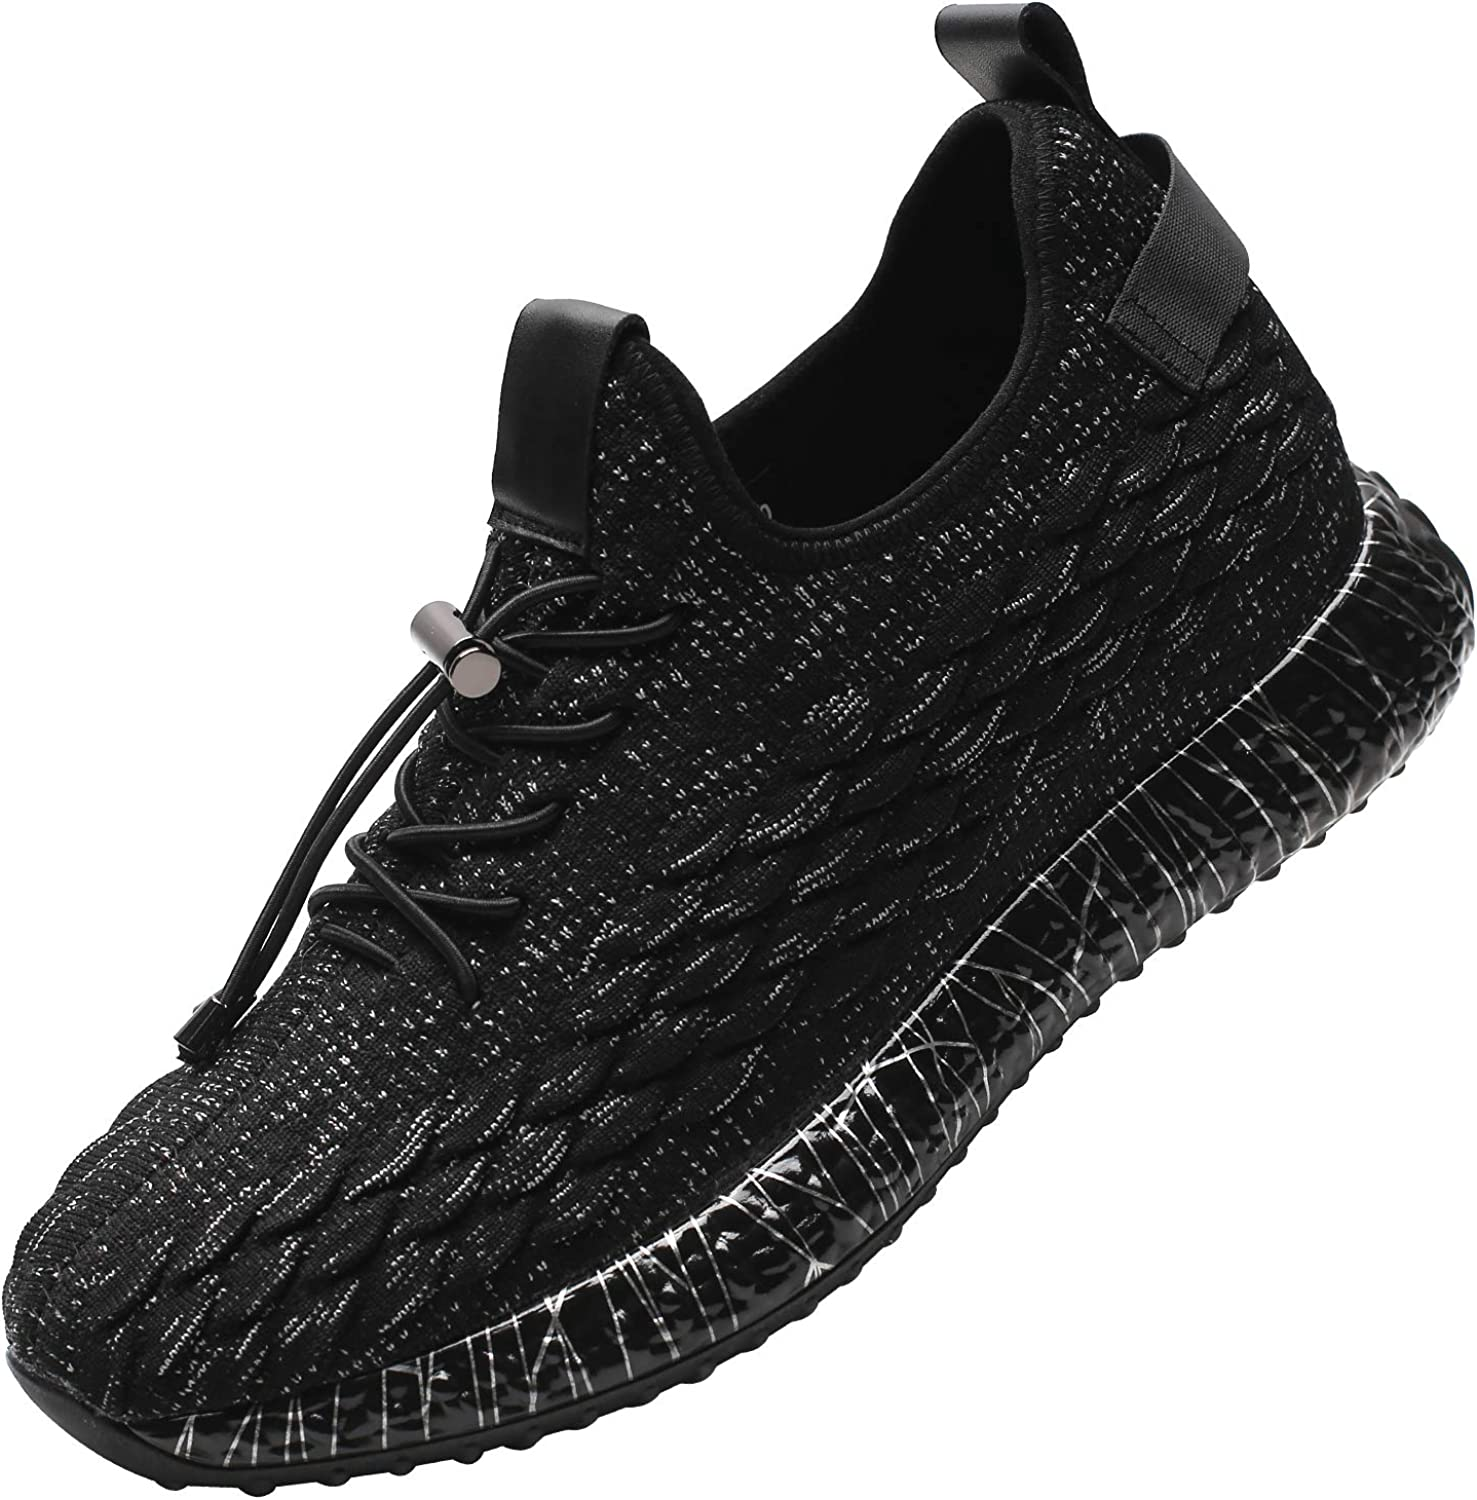 CHAMARIPA Men's Elevator Shoes Invisible Height Increasing Shoes Casual Sneakers Mesh Sport Lifting Shoes 2.36 Inches Taller Black H91C103D131D